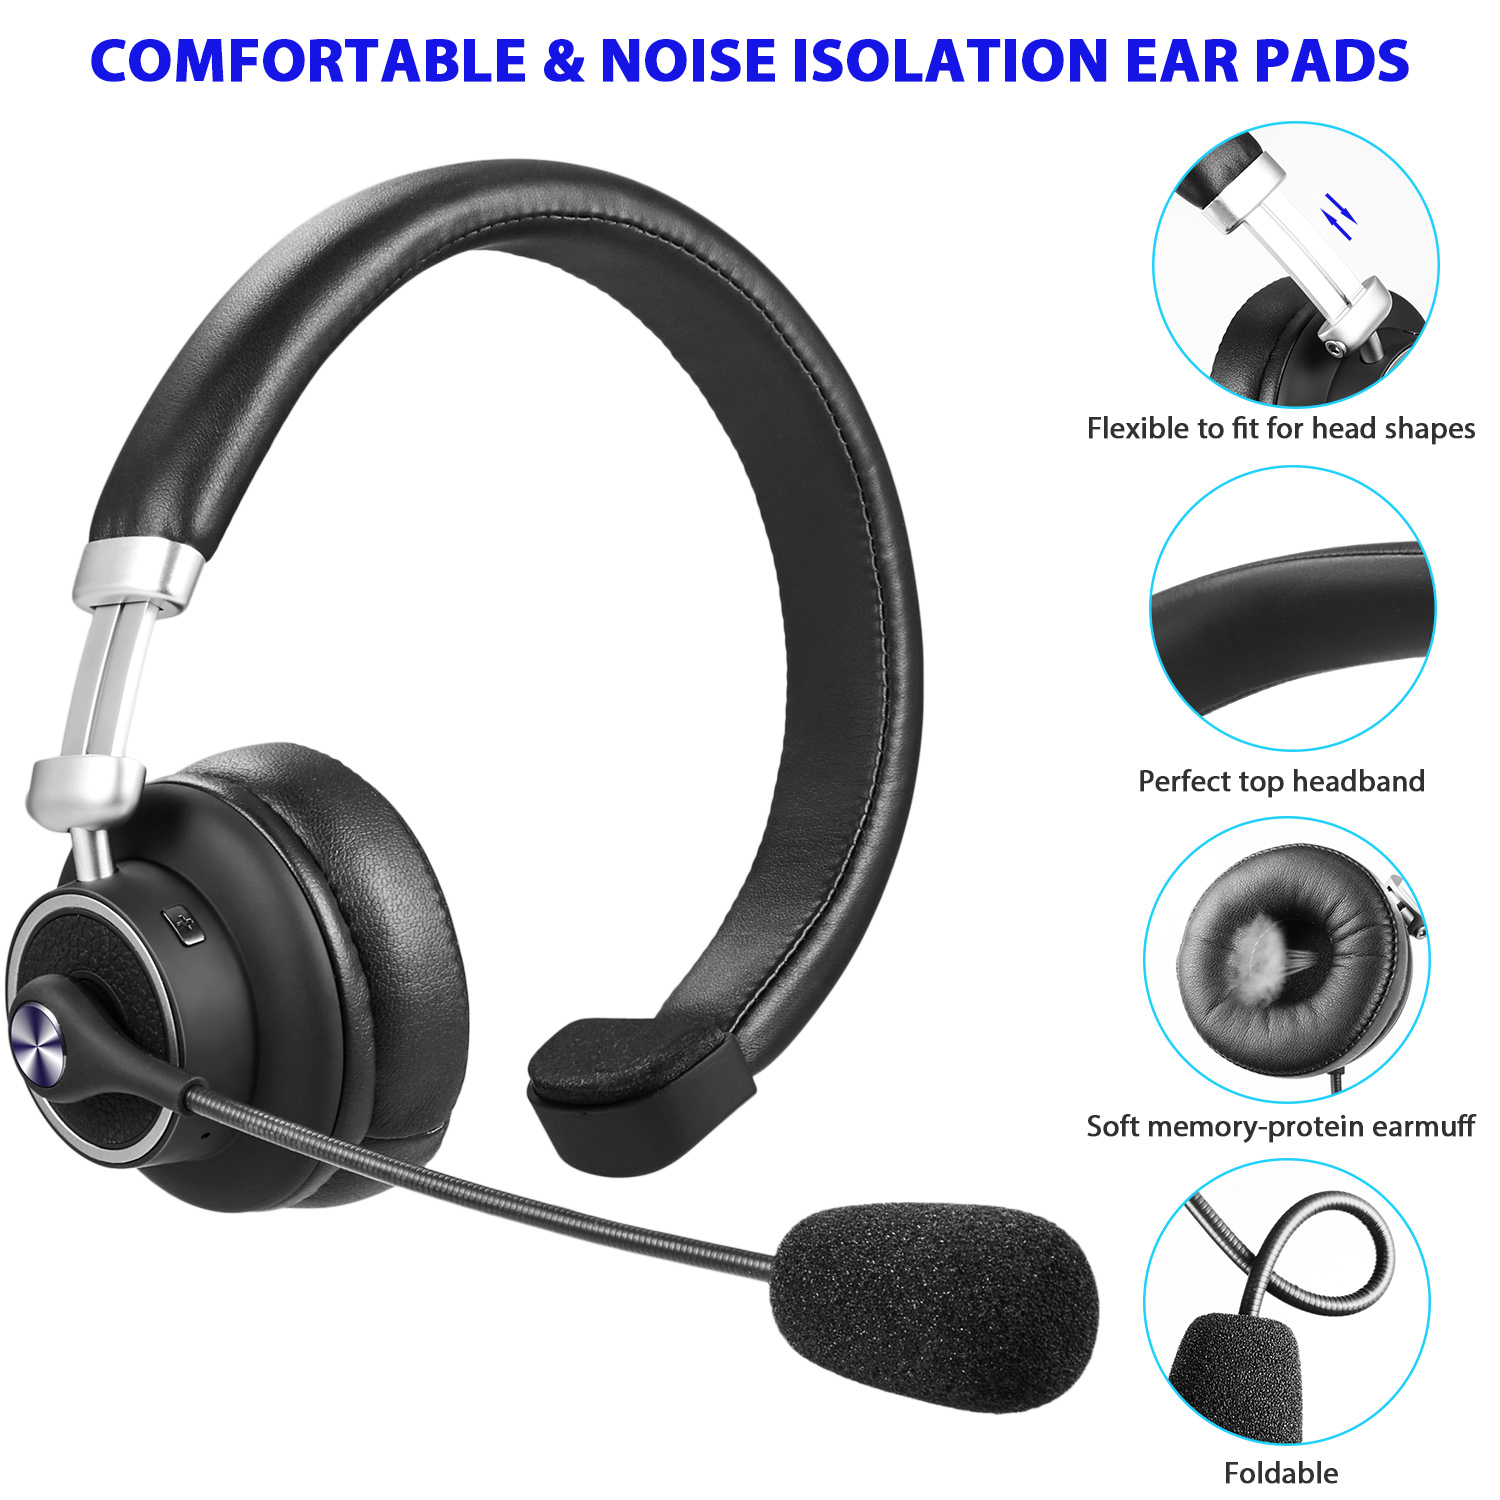 Luxmo Trucker Bluetooth Headset Wireless Headphones With Microphone Noise Cancelling Headphones For Truck Driver Wireless Over The Head Earpiece With Mic For Skype Call Centers Walmart Com Walmart Com